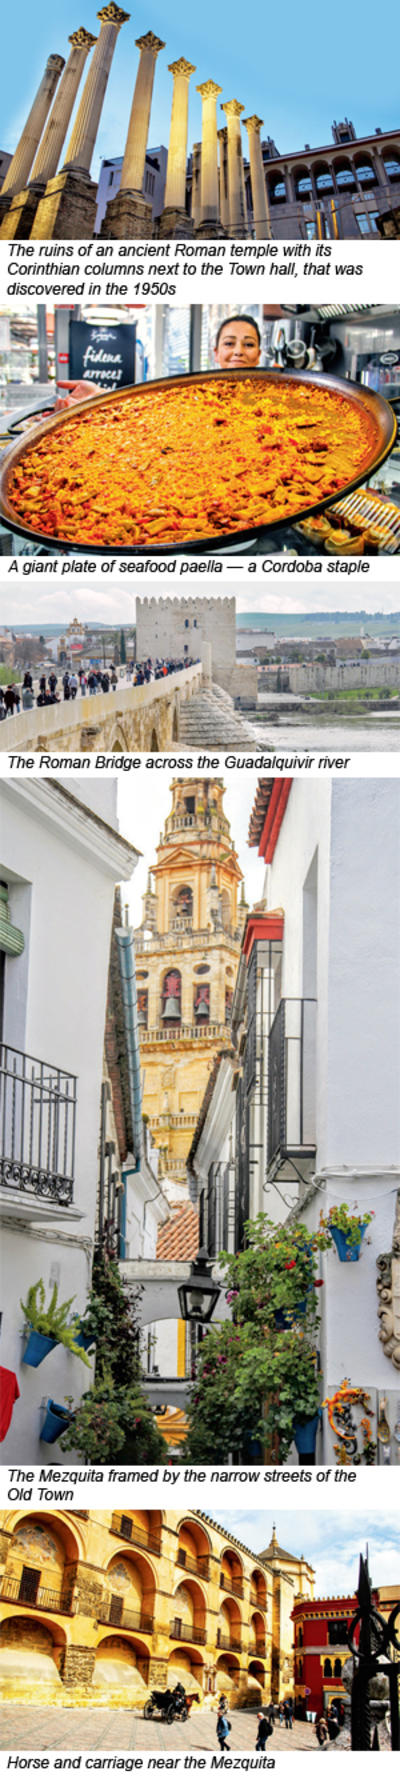 Travel: The historic charm of Cordoba